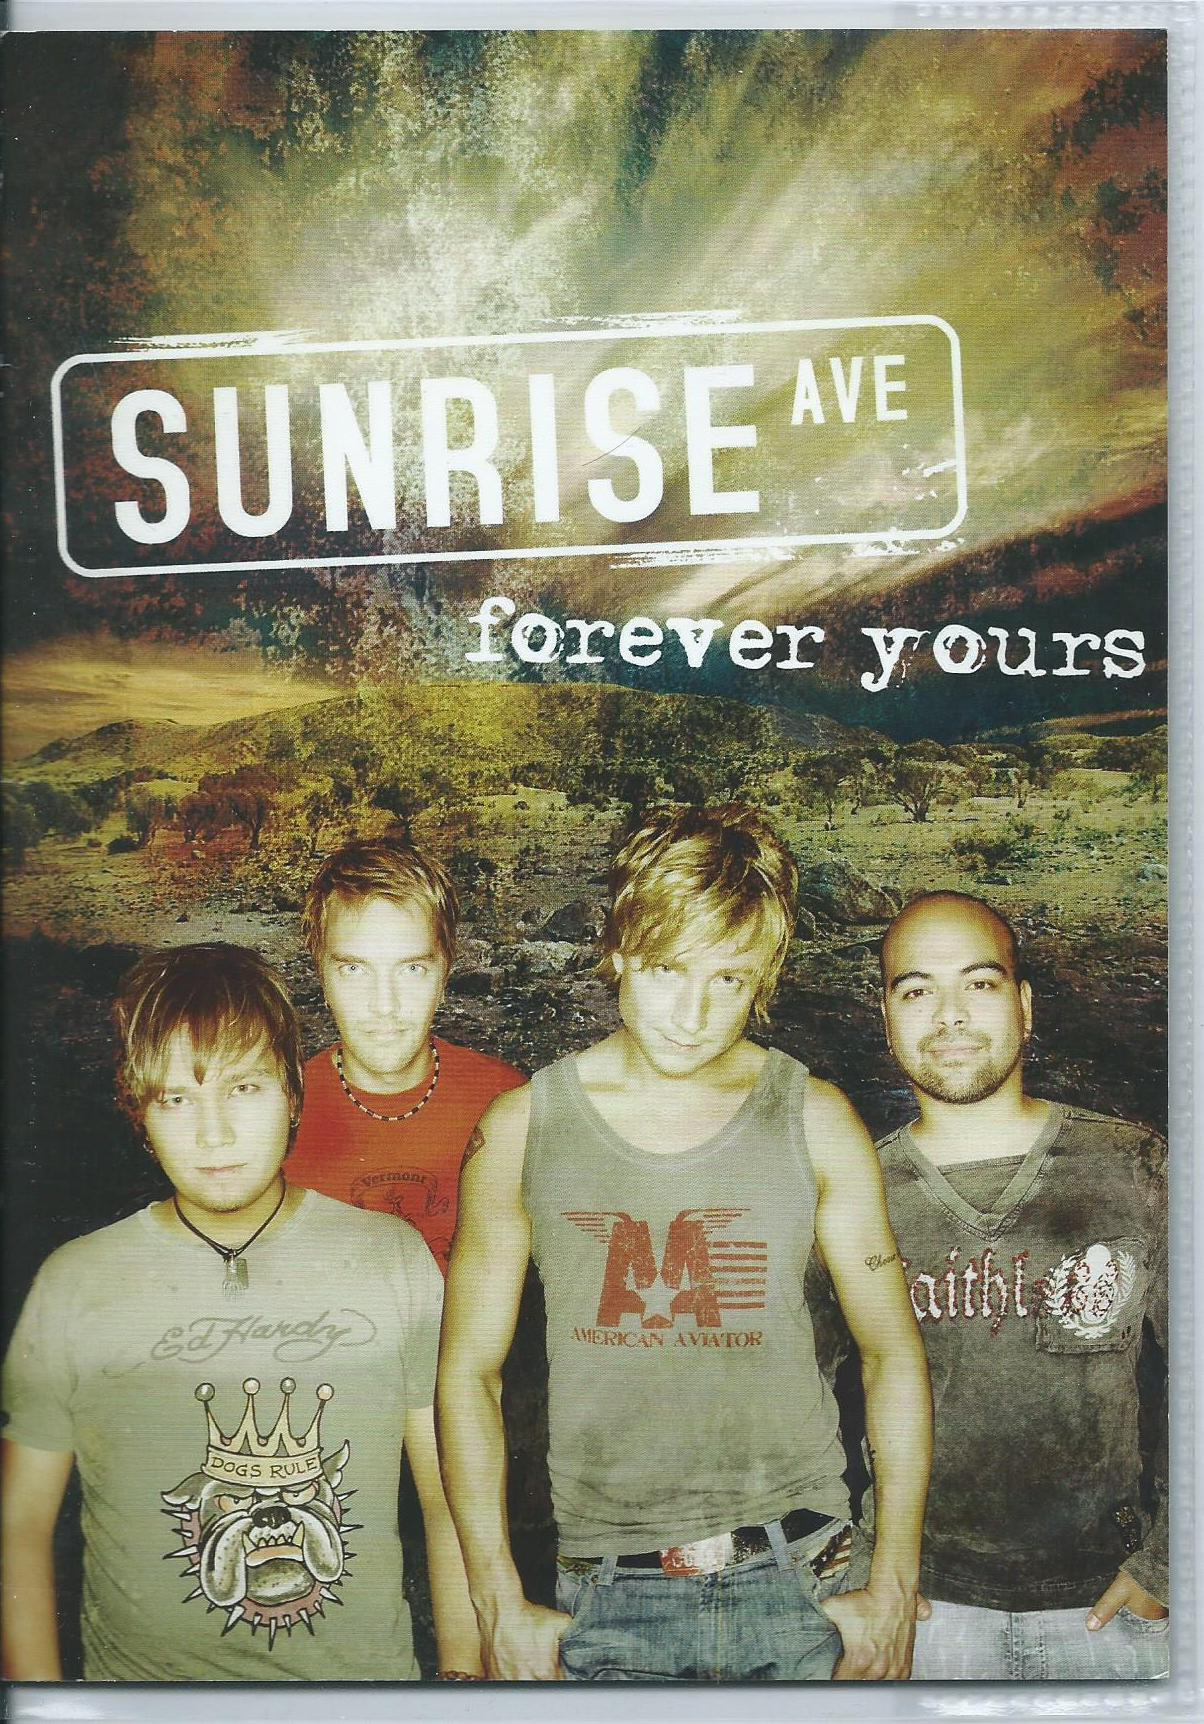 Sunrise avenue discography my collection - Forever yours sunrise avenue ...